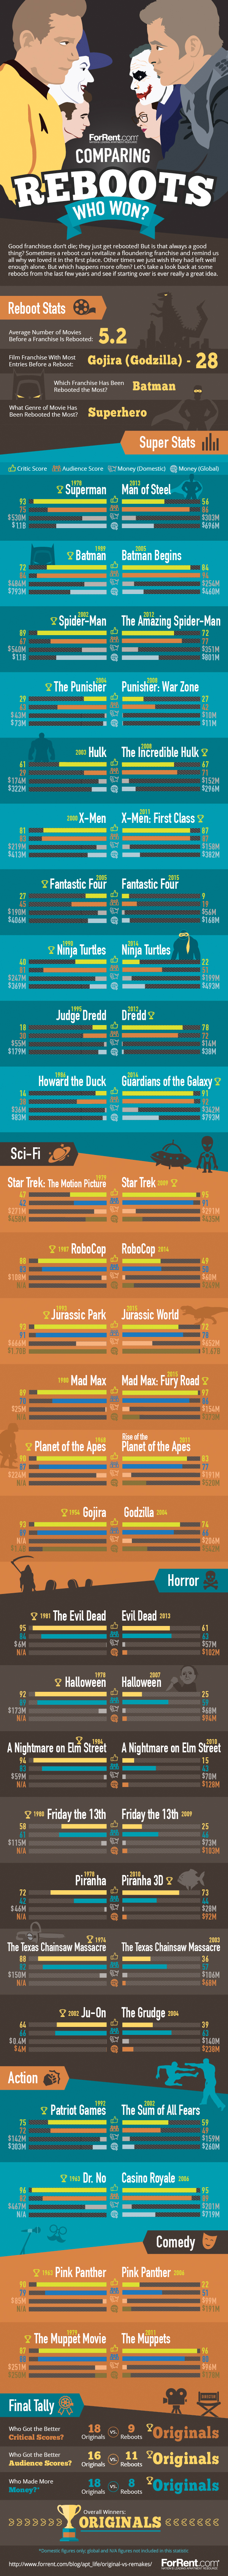 Reboots Infographic